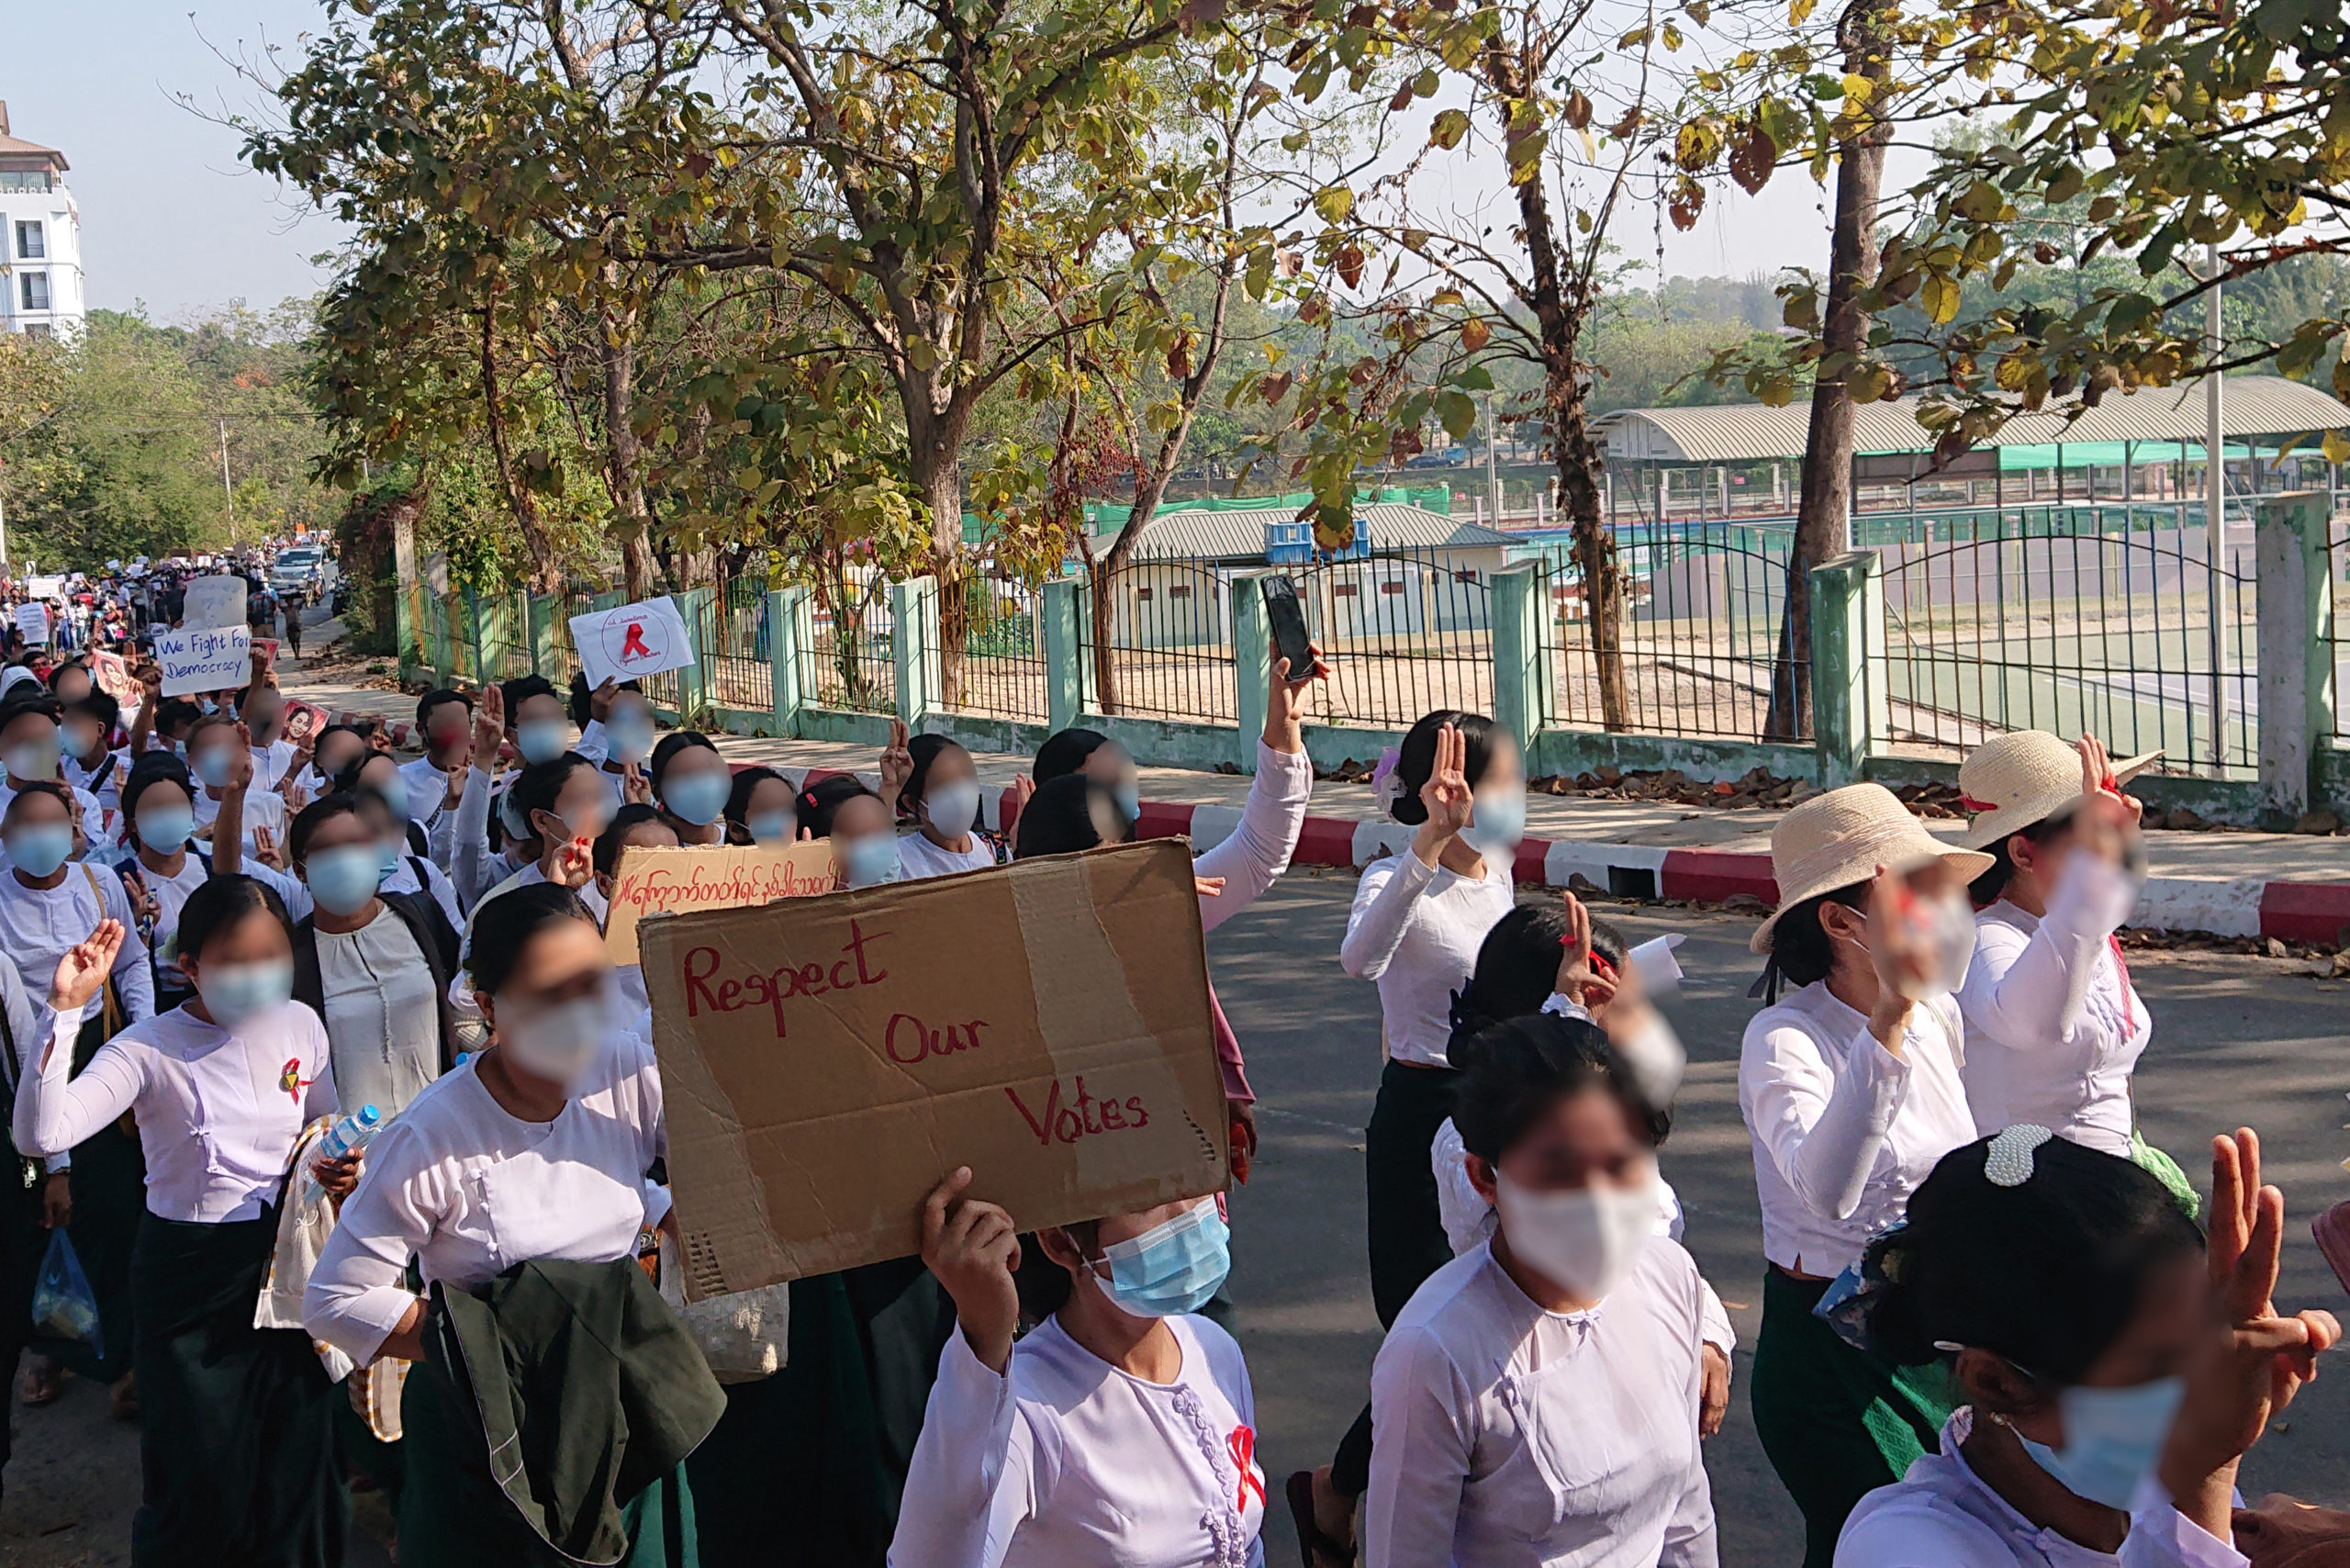 A group of uniformed schoolteachers protesting in Hpa-an on 9 February 2021 (photo credit: wiki commons CC BY-SA 4.0)